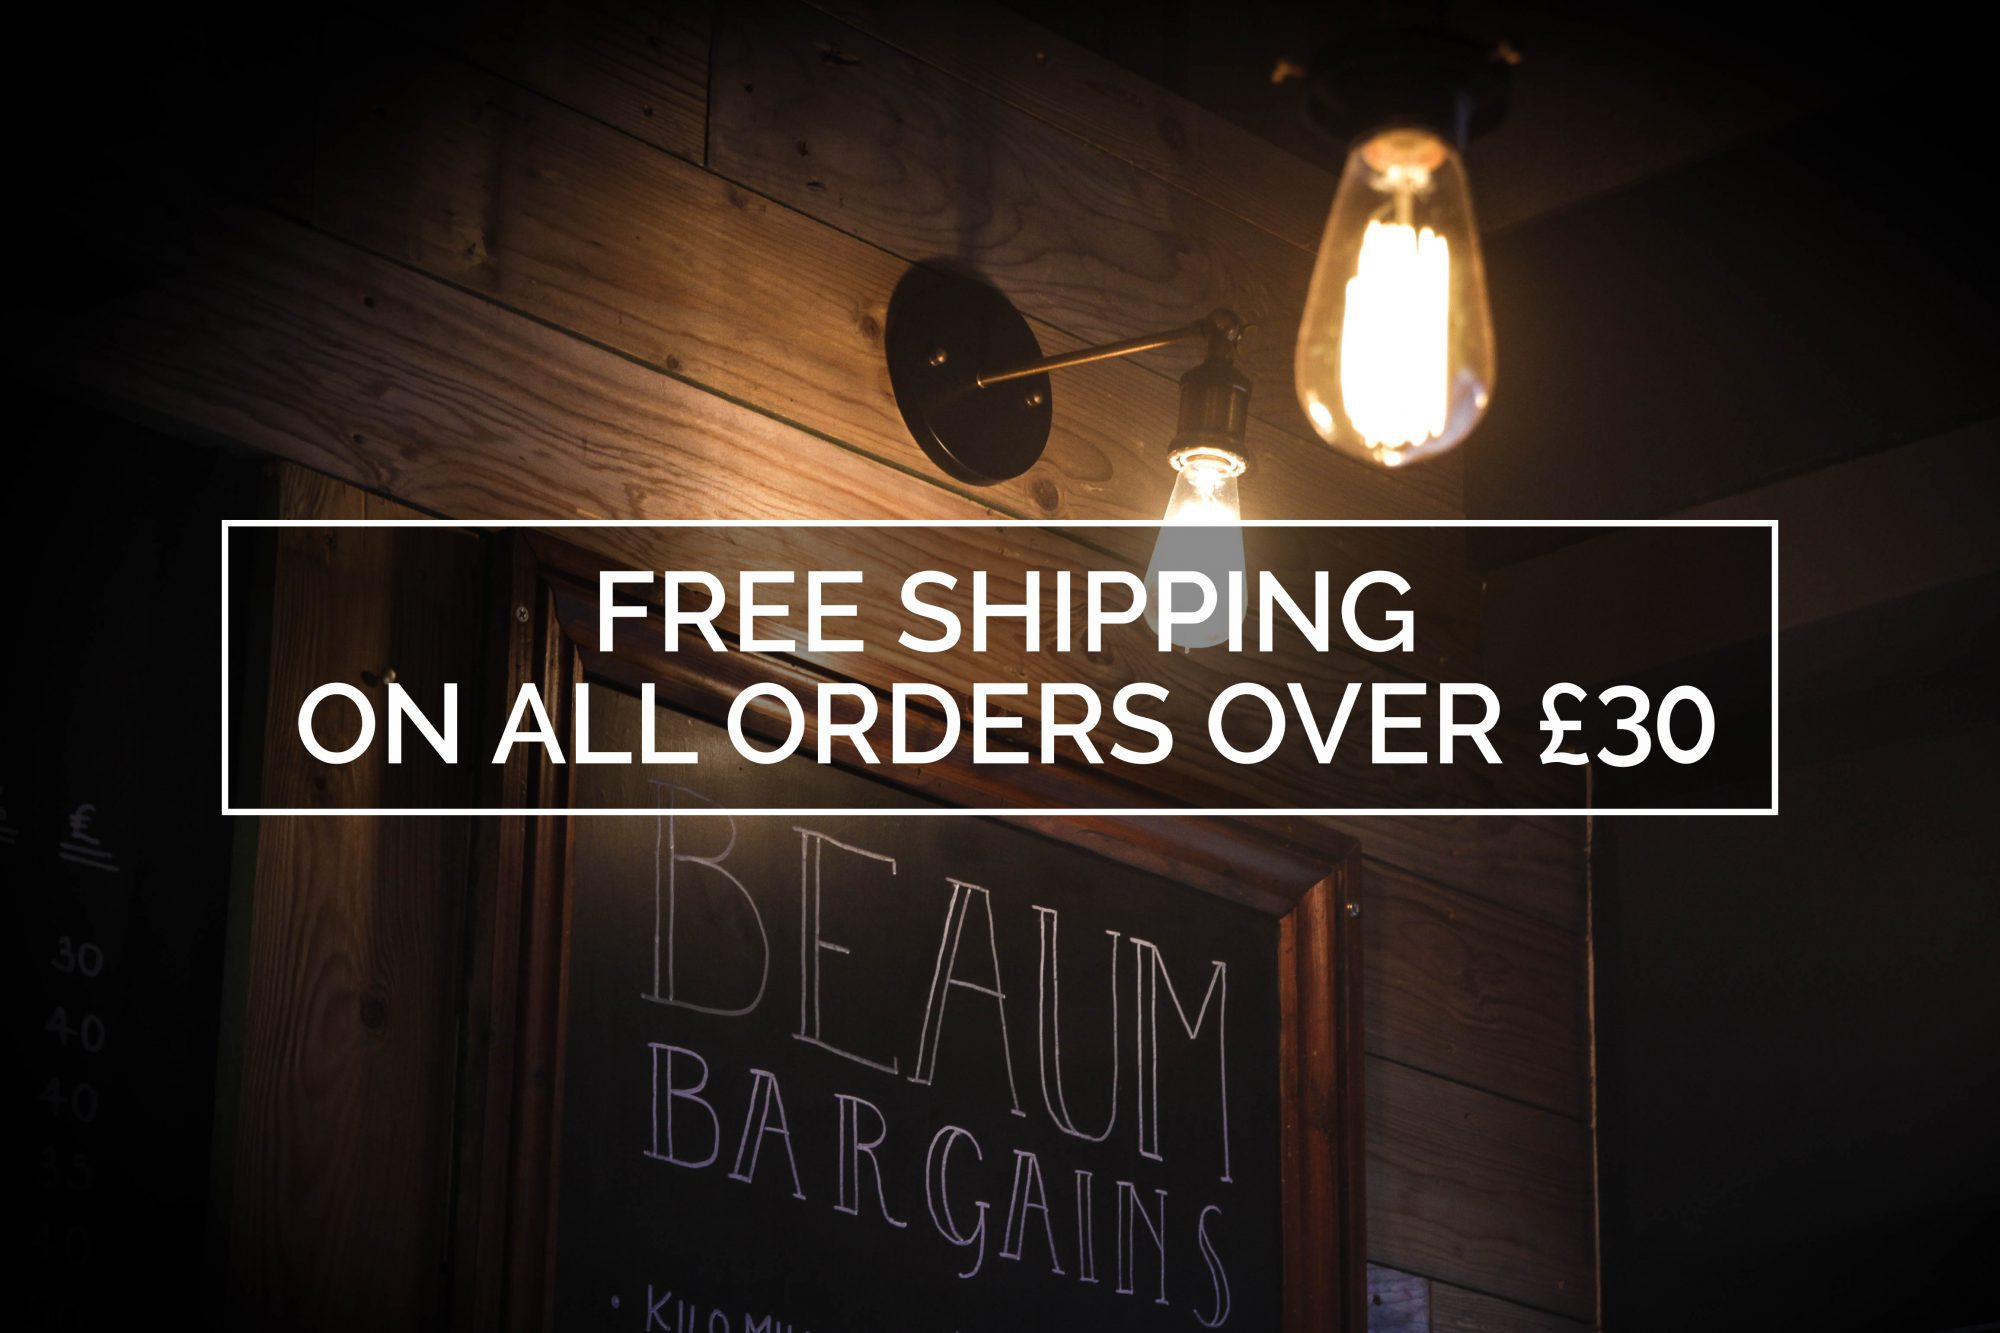 FREE SHIPPING ON ALL ORDERS OVER £30 - BEAUM VAPE